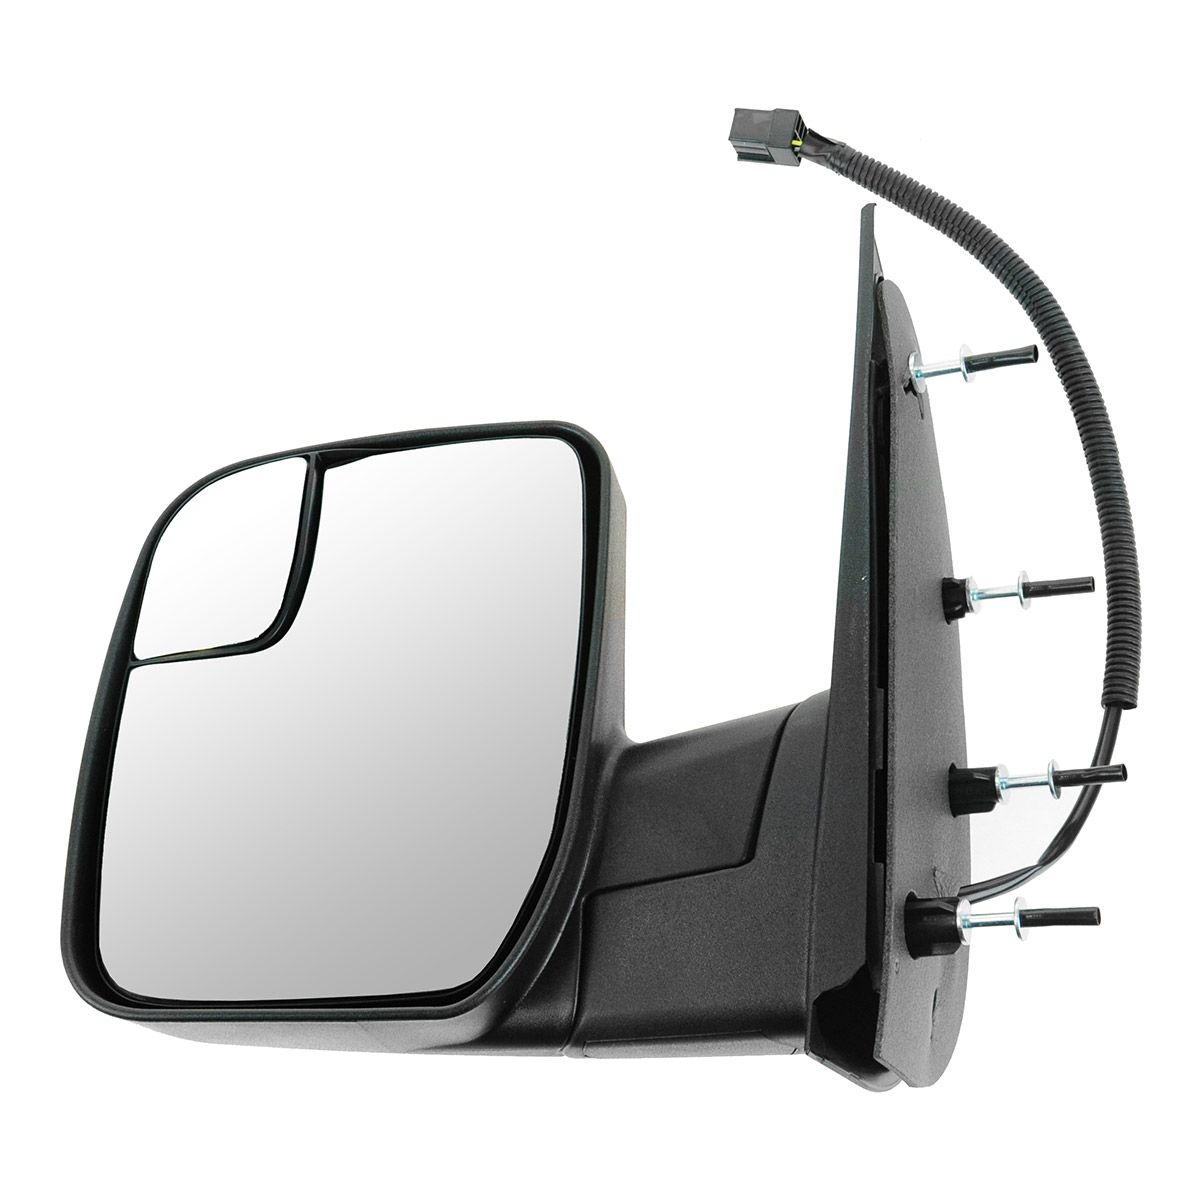 US Made Door Mirror Glass Replacement Driver Side For Mazda 3 10-12